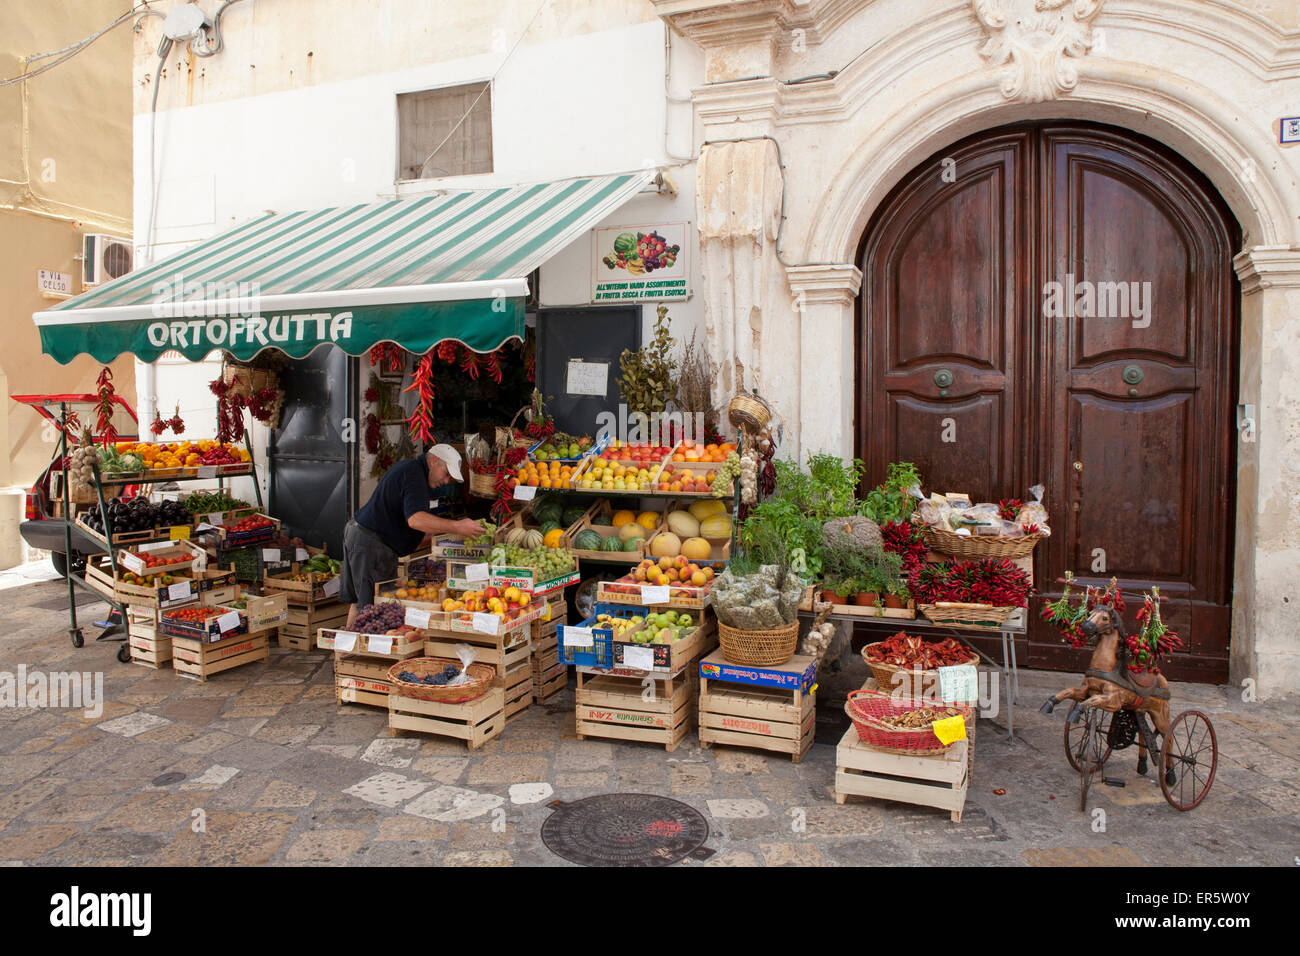 Greengrocery in the historical center of Gallipoli, Lecce Province, Apulia, Gulf of Taranto, Italy, Europe - Stock Image